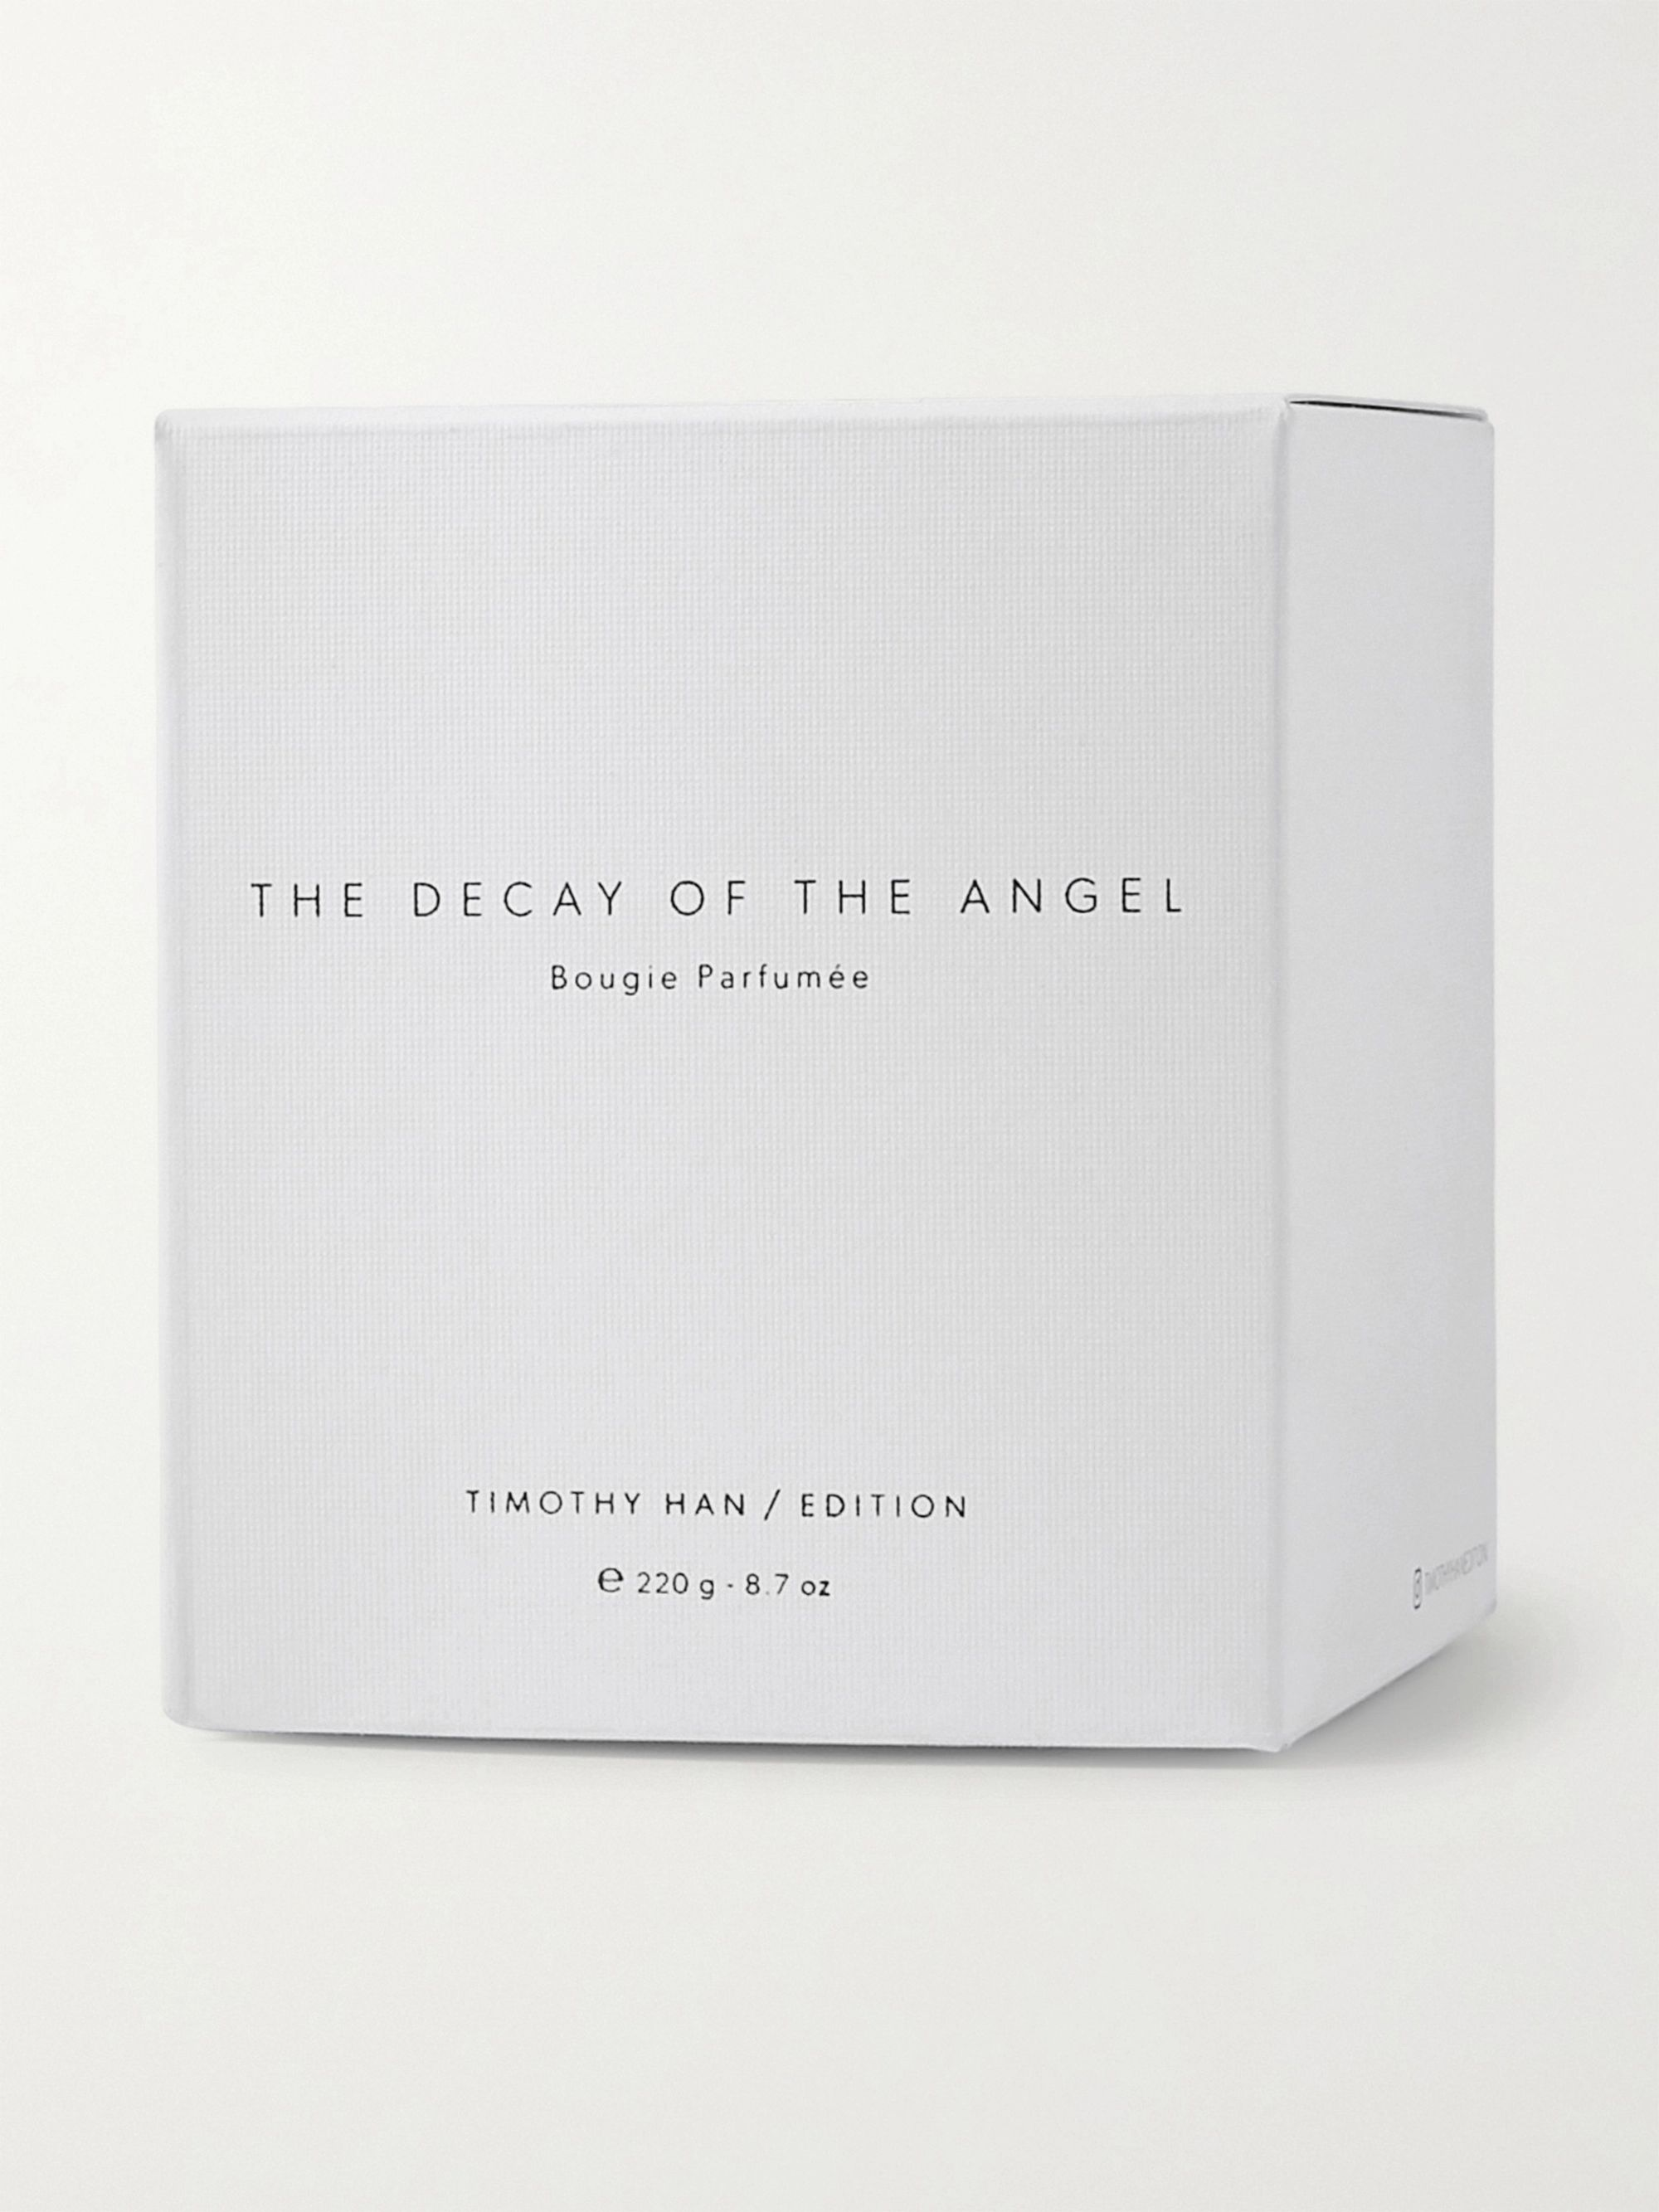 TIMOTHY HAN / EDITION The Decay of the Angel Scented Candle, 220g